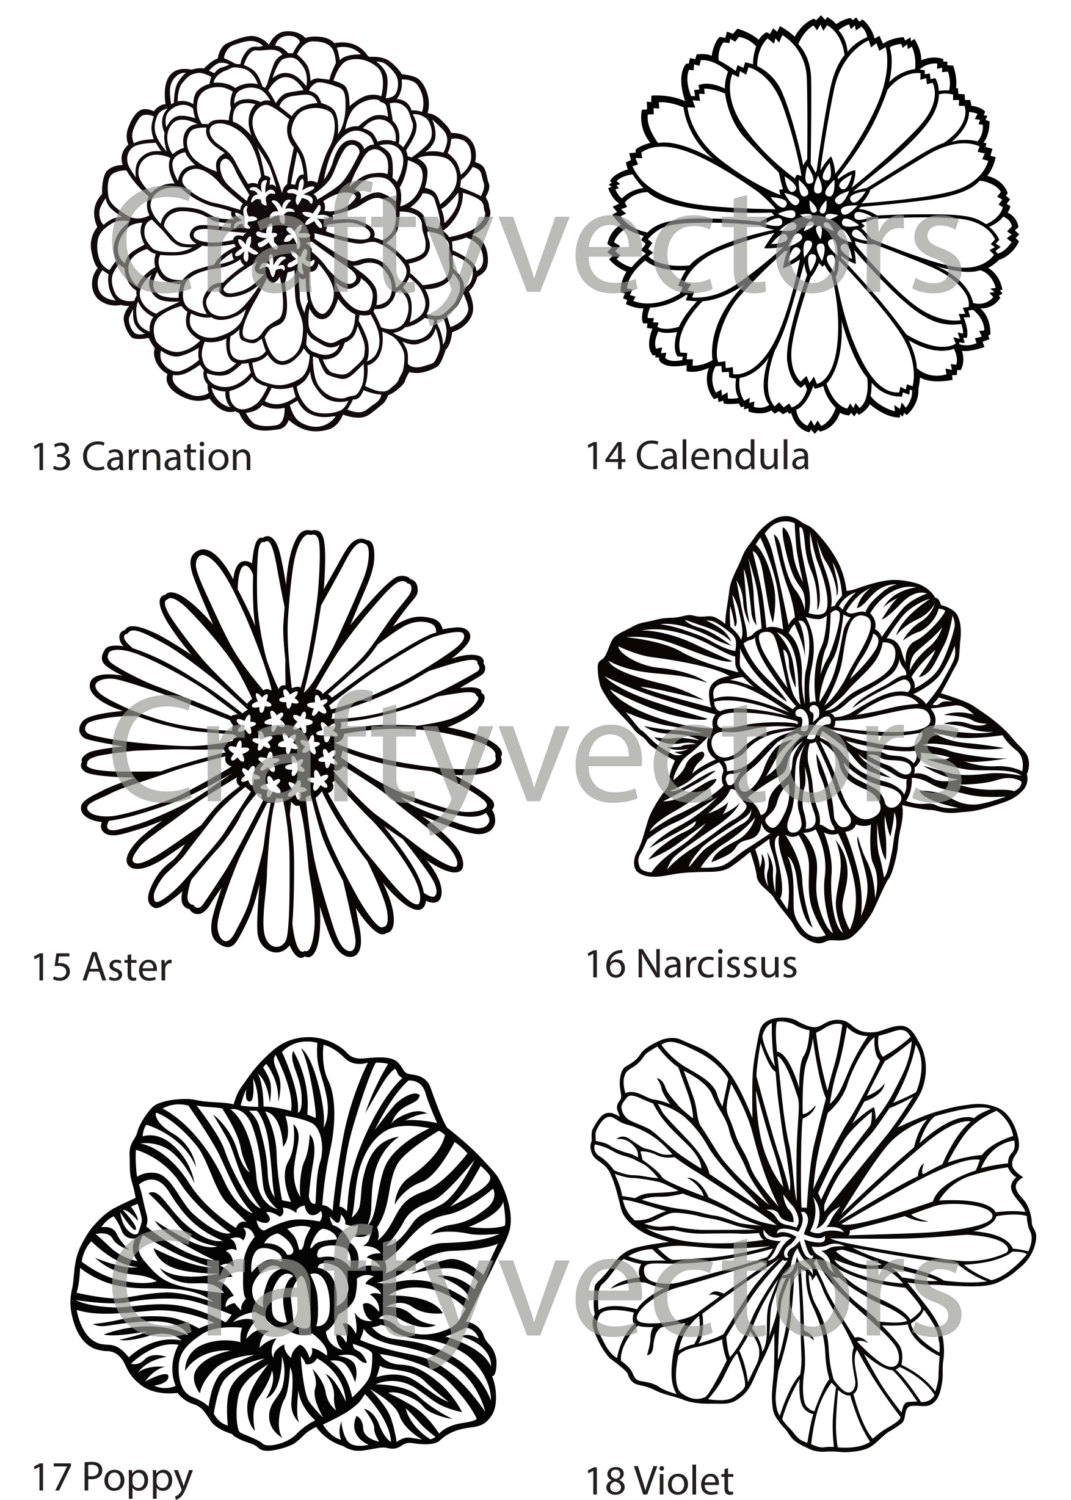 Paperwhite Narcissus svg #6, Download drawings